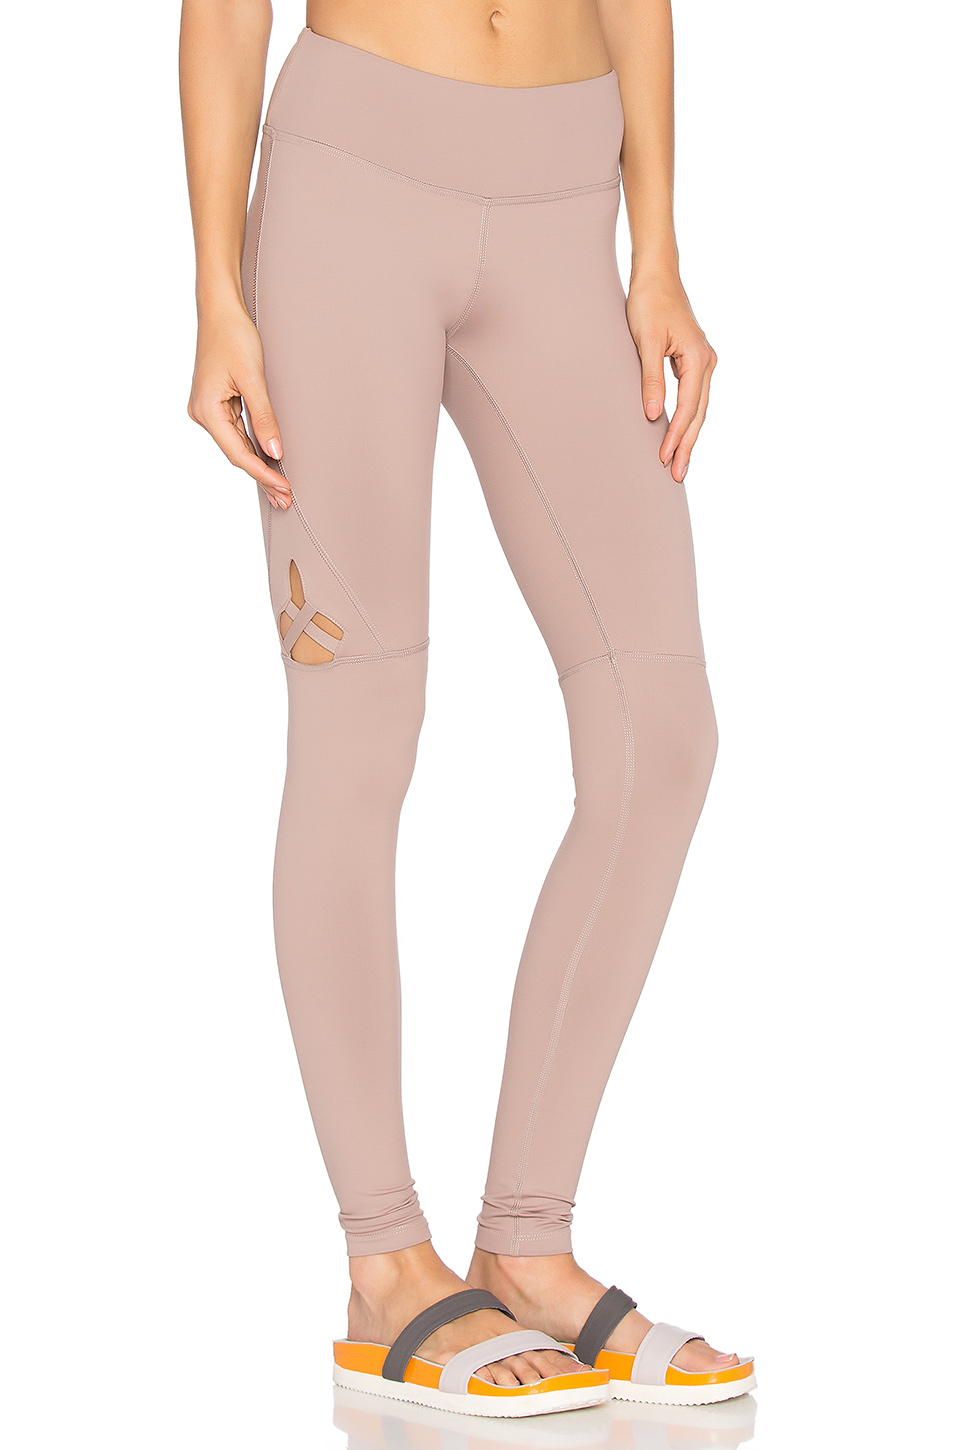 Track & Bliss Star Cut Out Legging in Tan